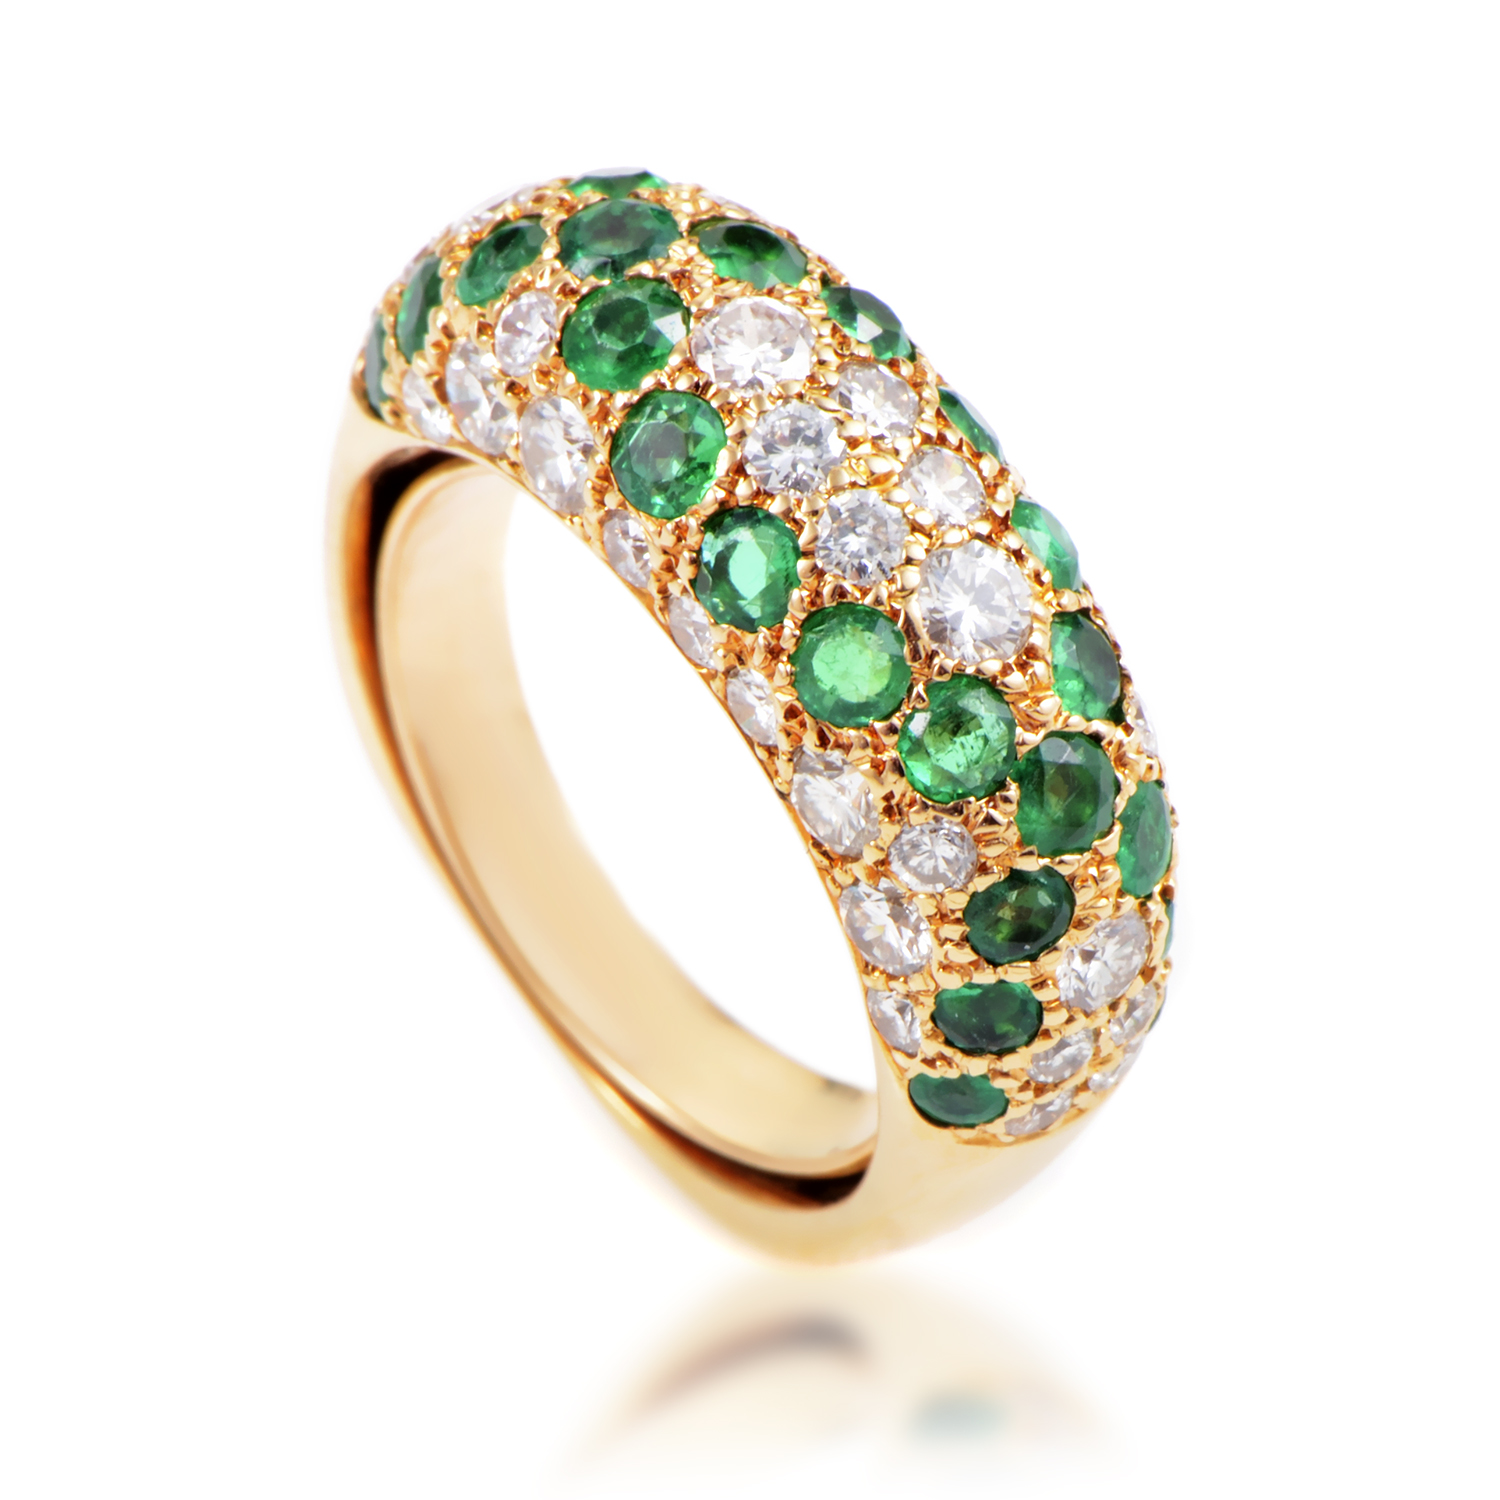 Boucheron Women's 18K Yellow Gold Diamond & Emerald Paved Band Ring AK1B3697